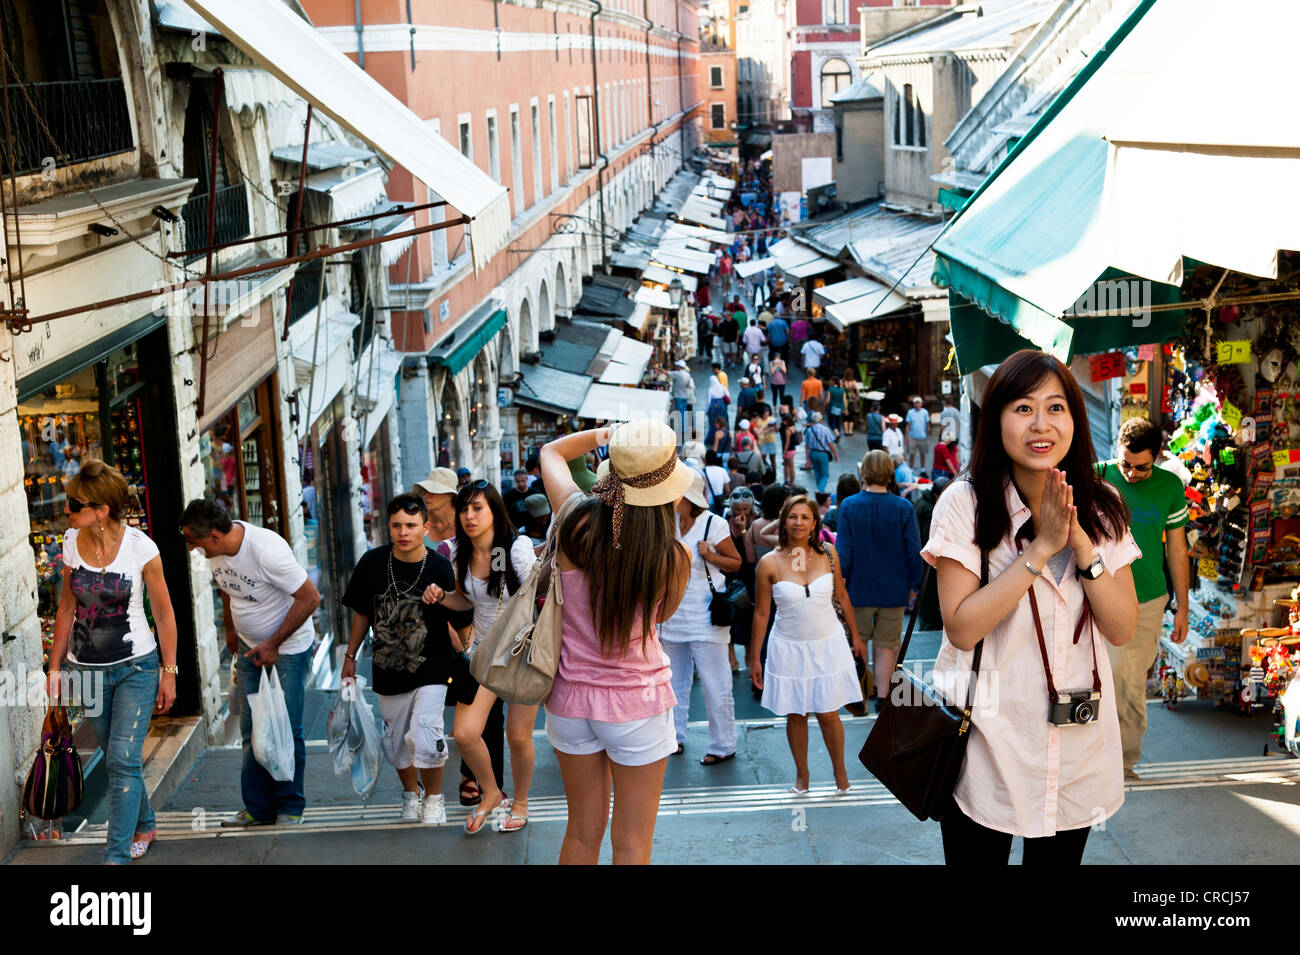 Businesses and tourists on the Rialto Bridge over the Grand Canal, Venice, Italy, Europe - Stock Image